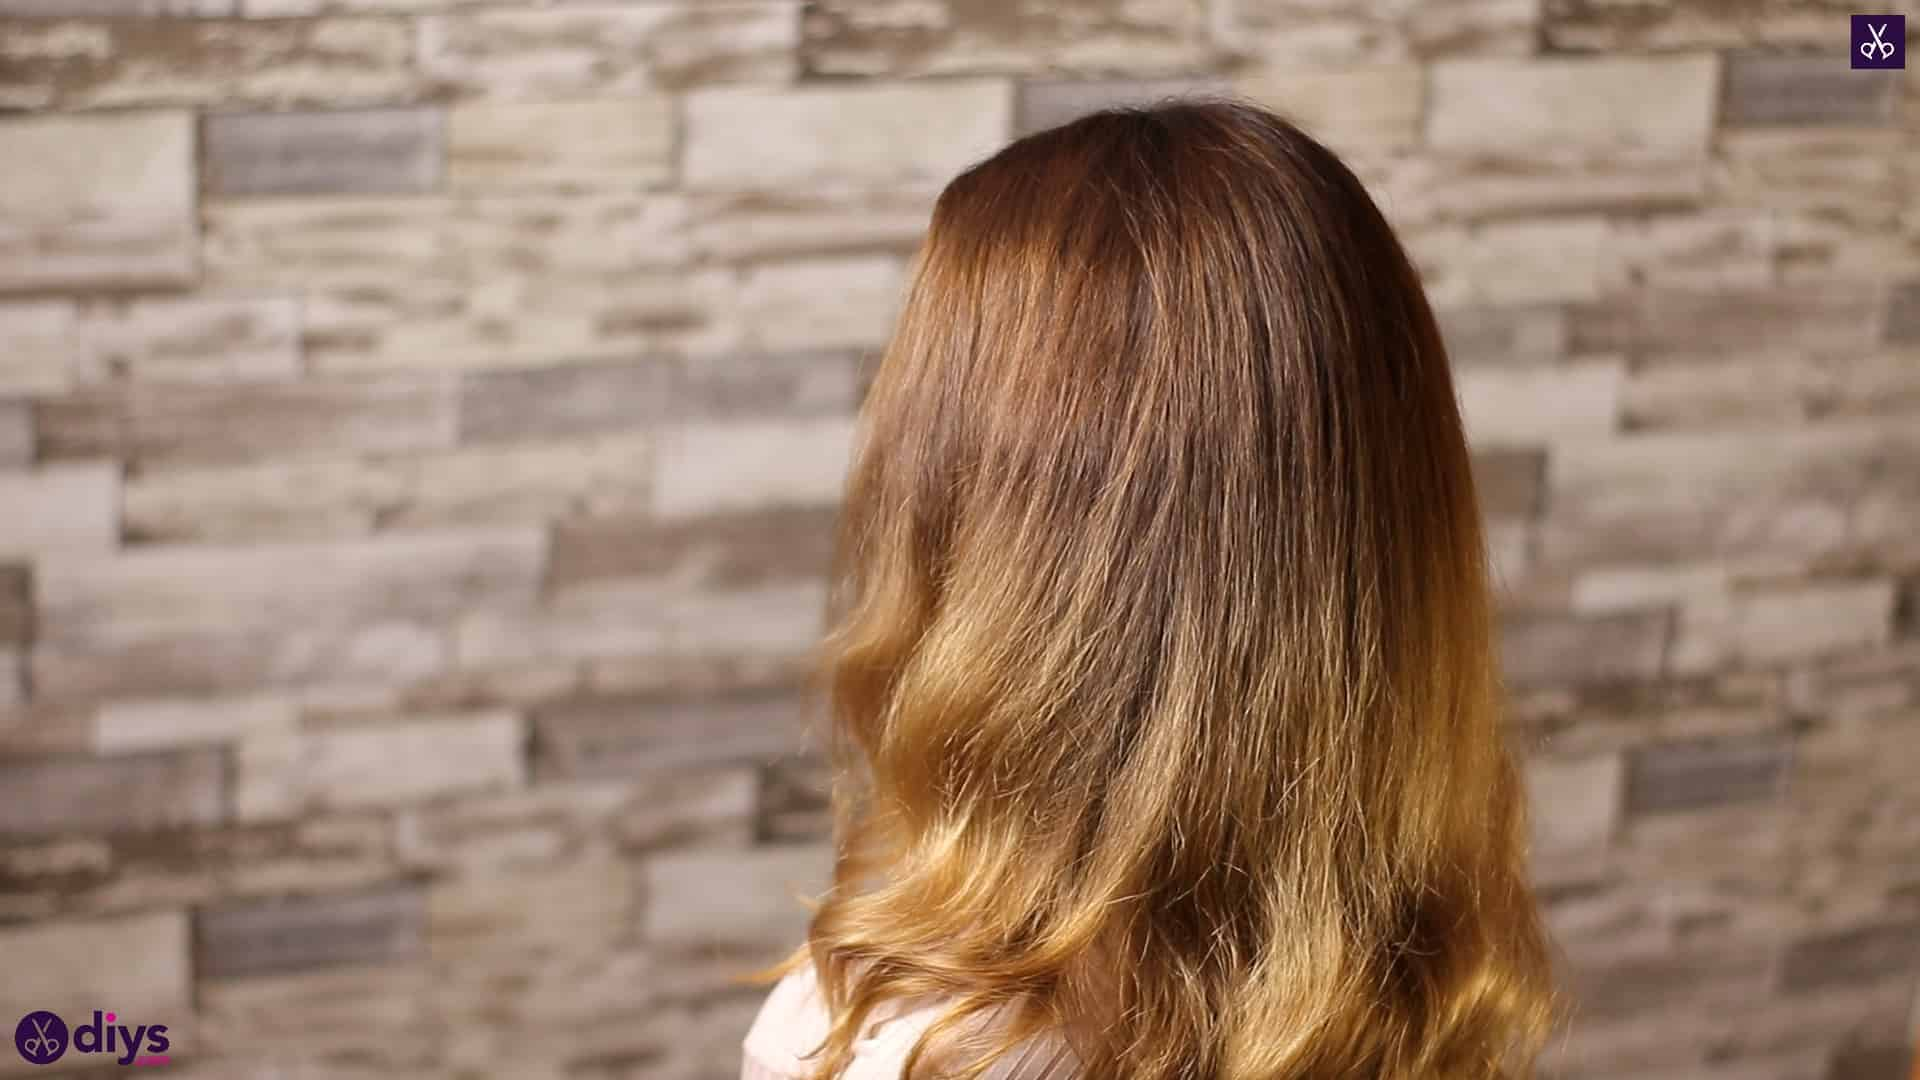 Updo hairstyle for wavy hair 6